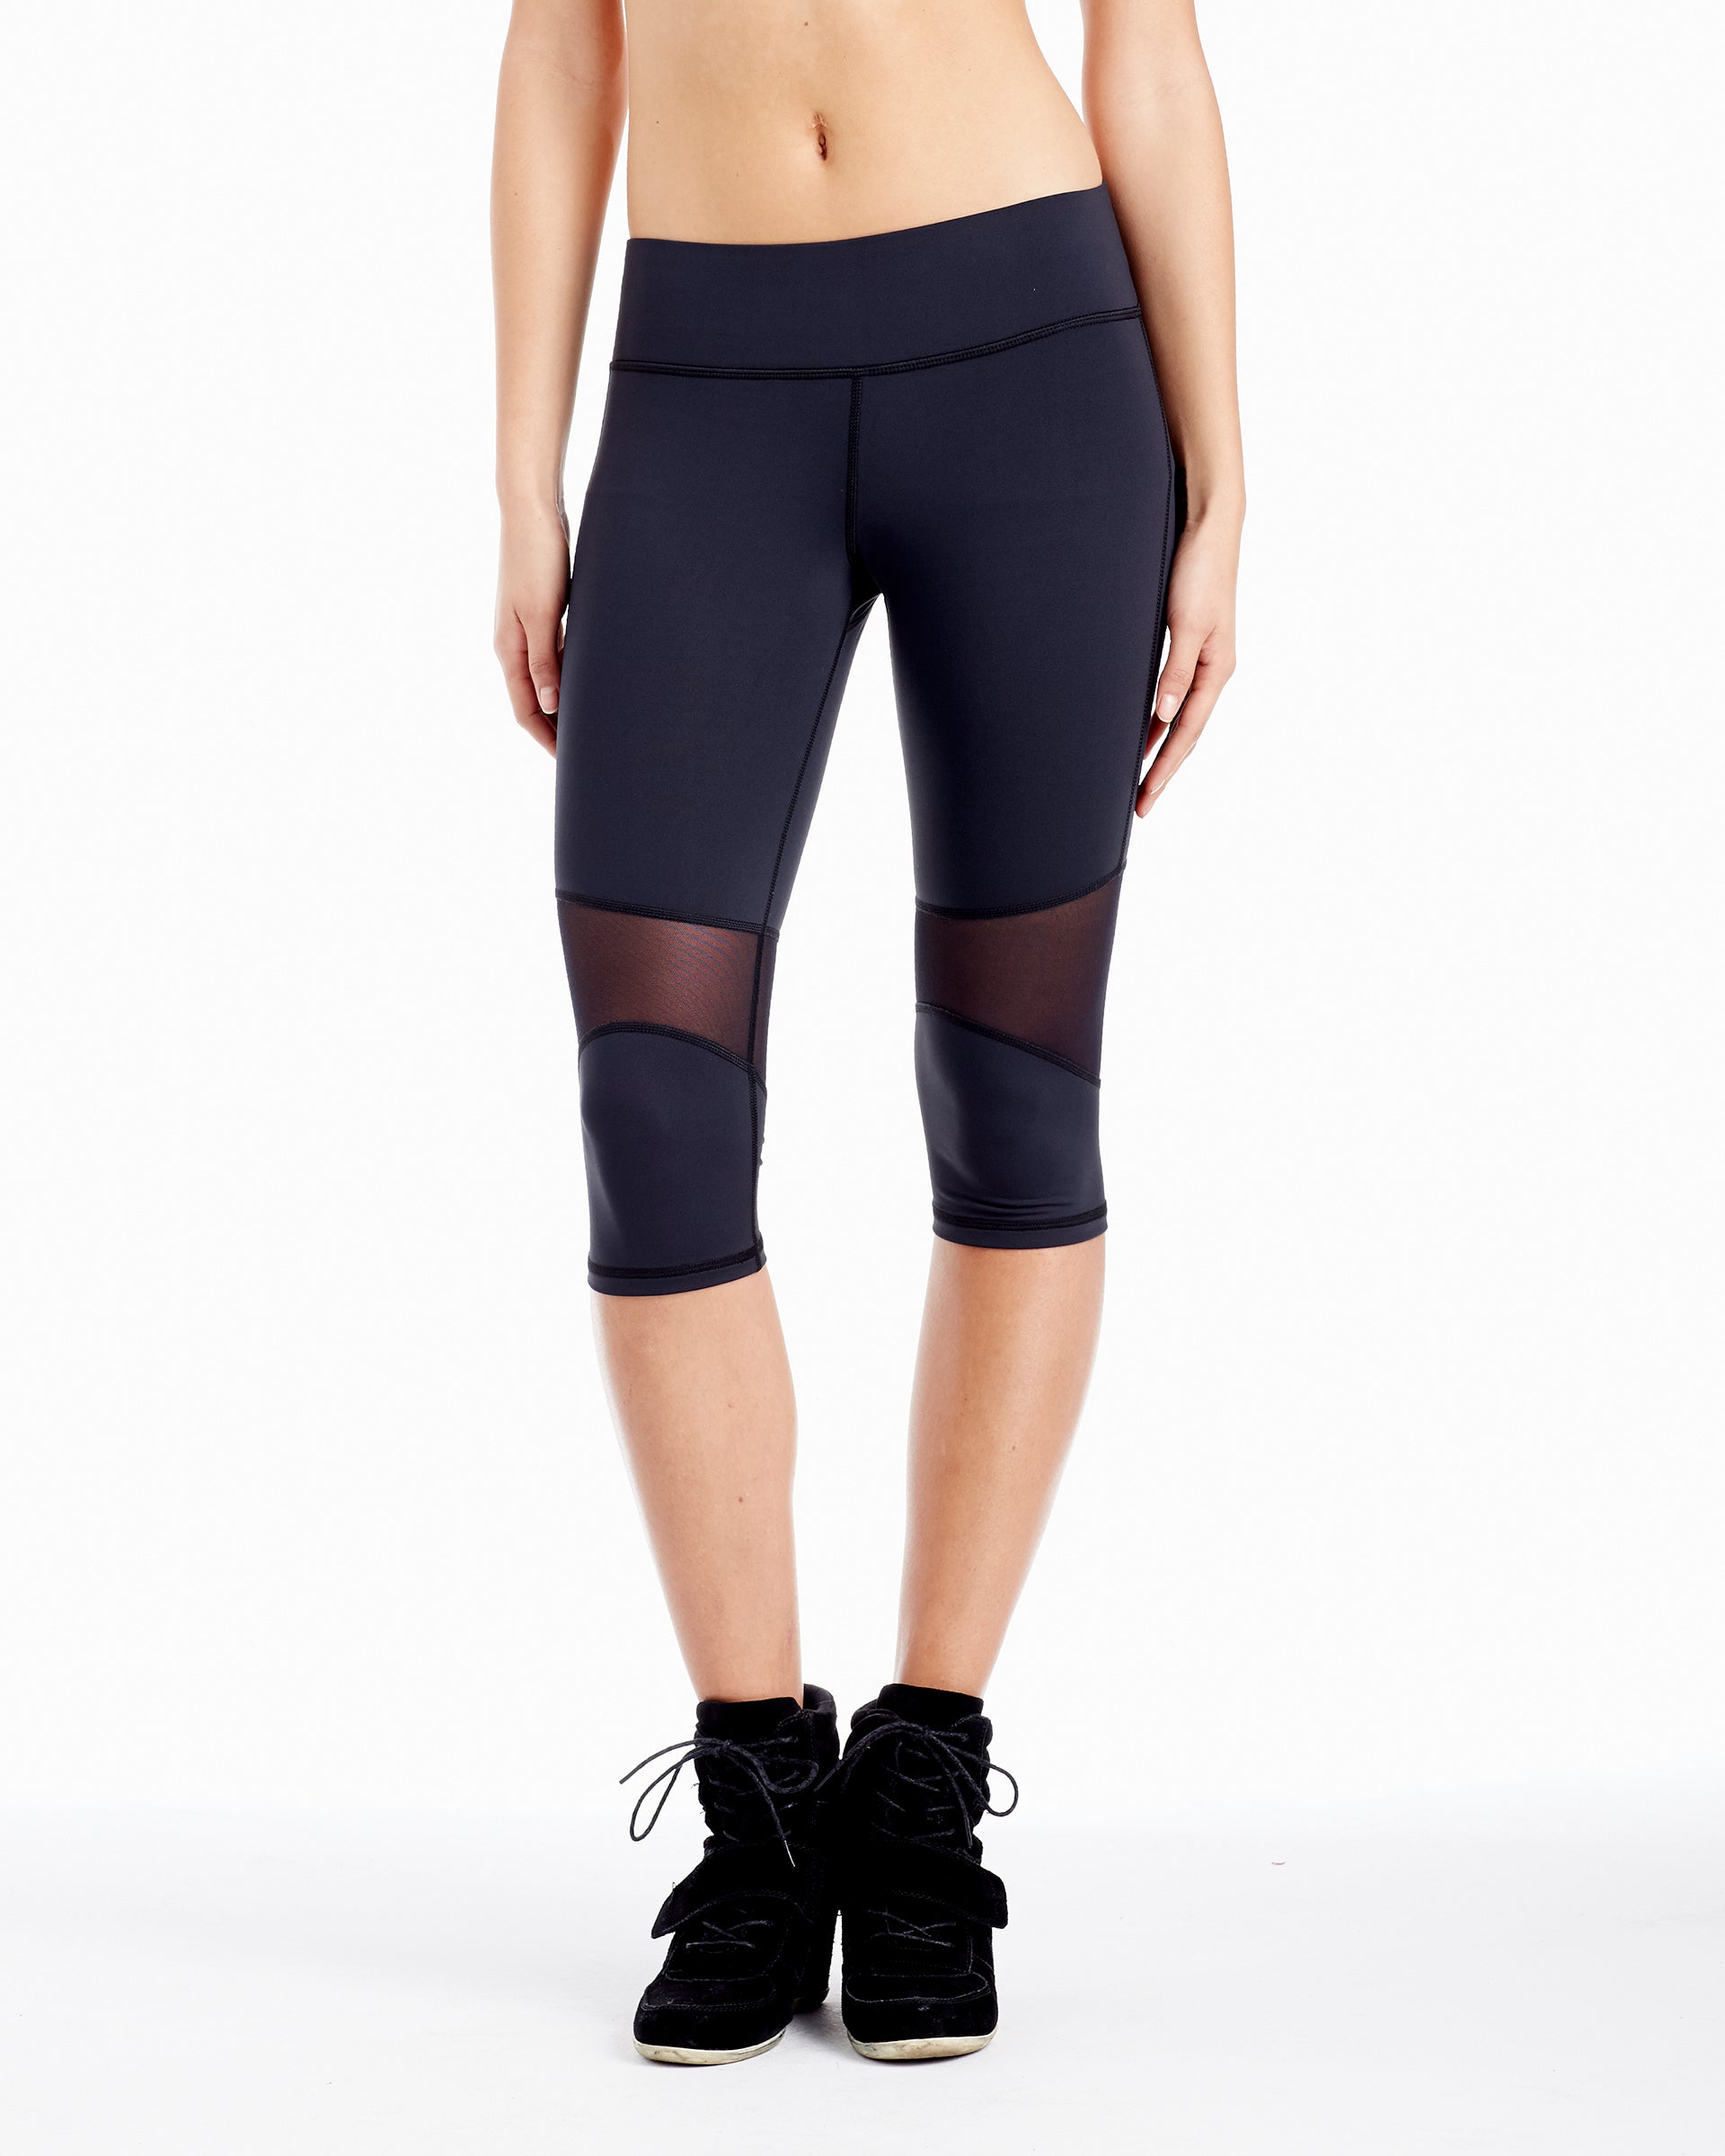 Motorino Knee Crop Legging - Black